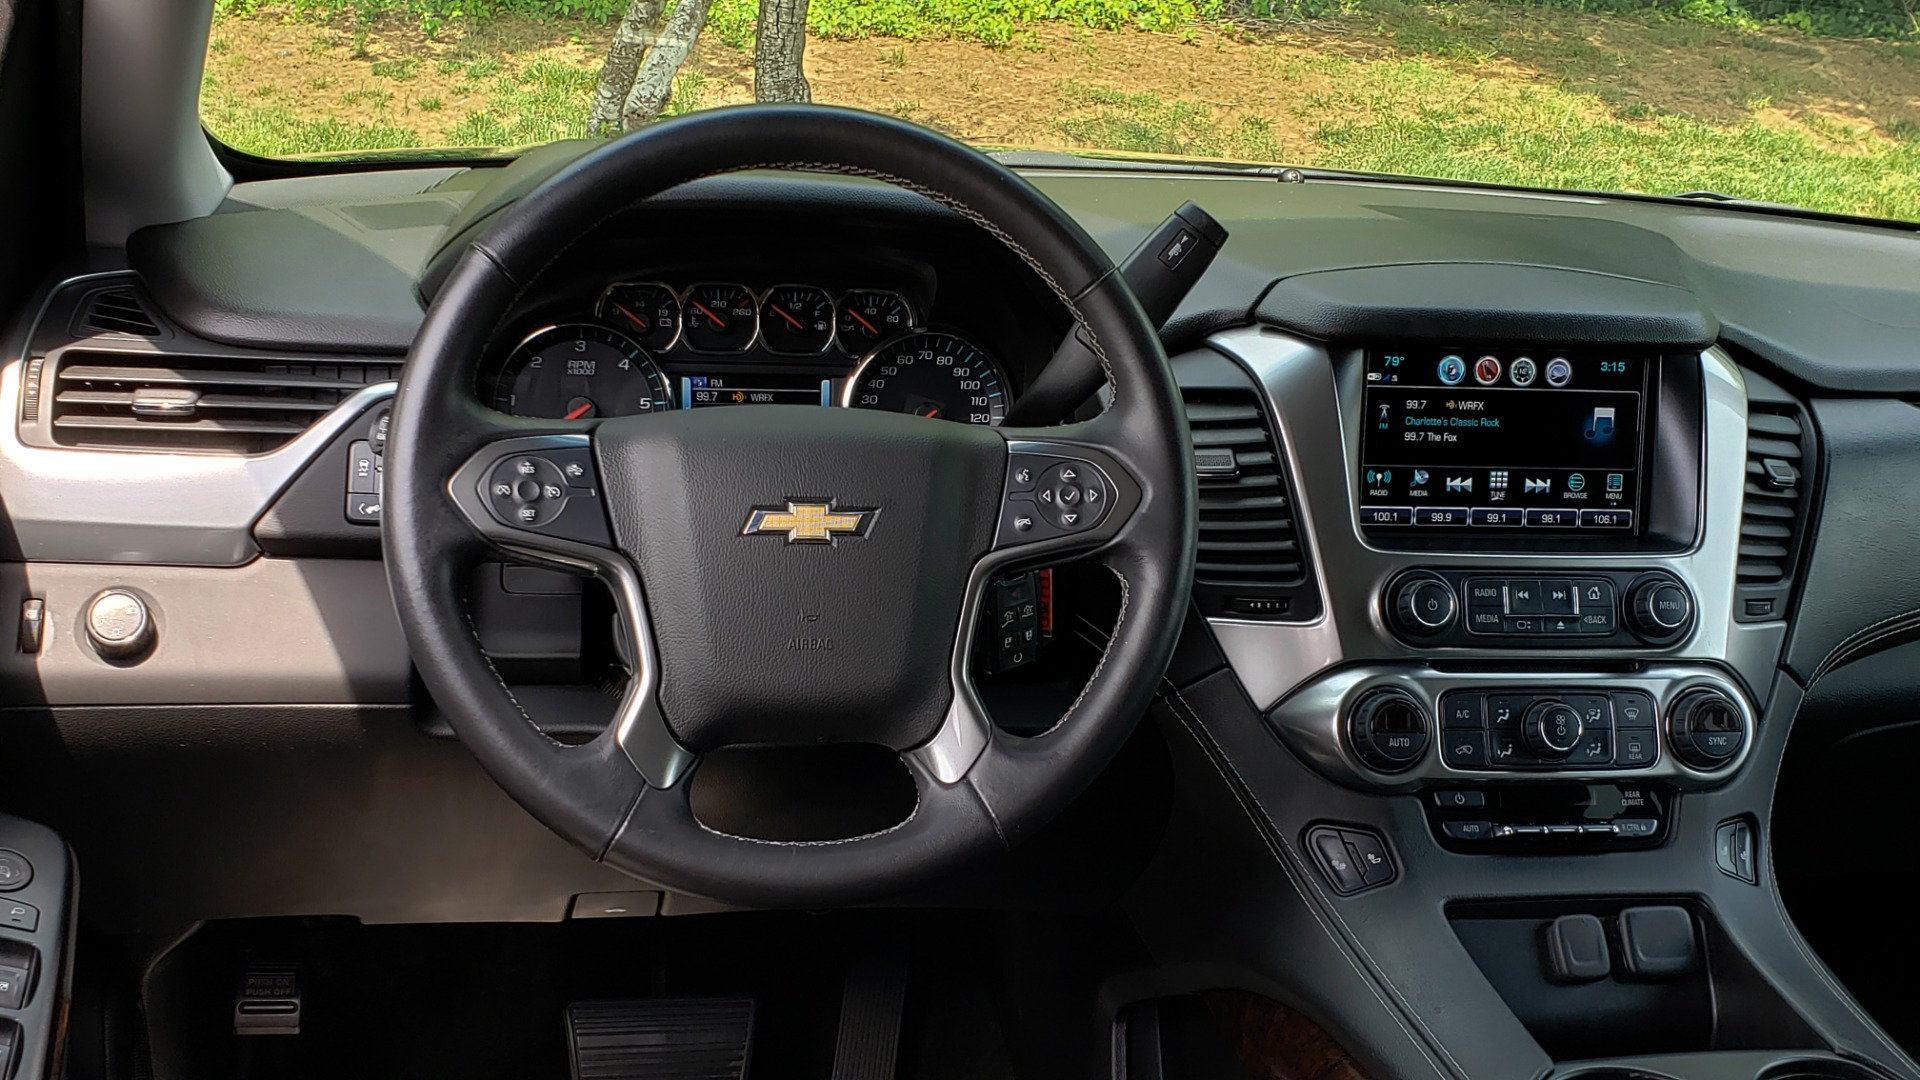 Used 2017 Chevrolet TAHOE LT 2WD / NAV / BOSE / HEATED SEATS / 3-ROW / REARVIEW for sale Sold at Formula Imports in Charlotte NC 28227 45